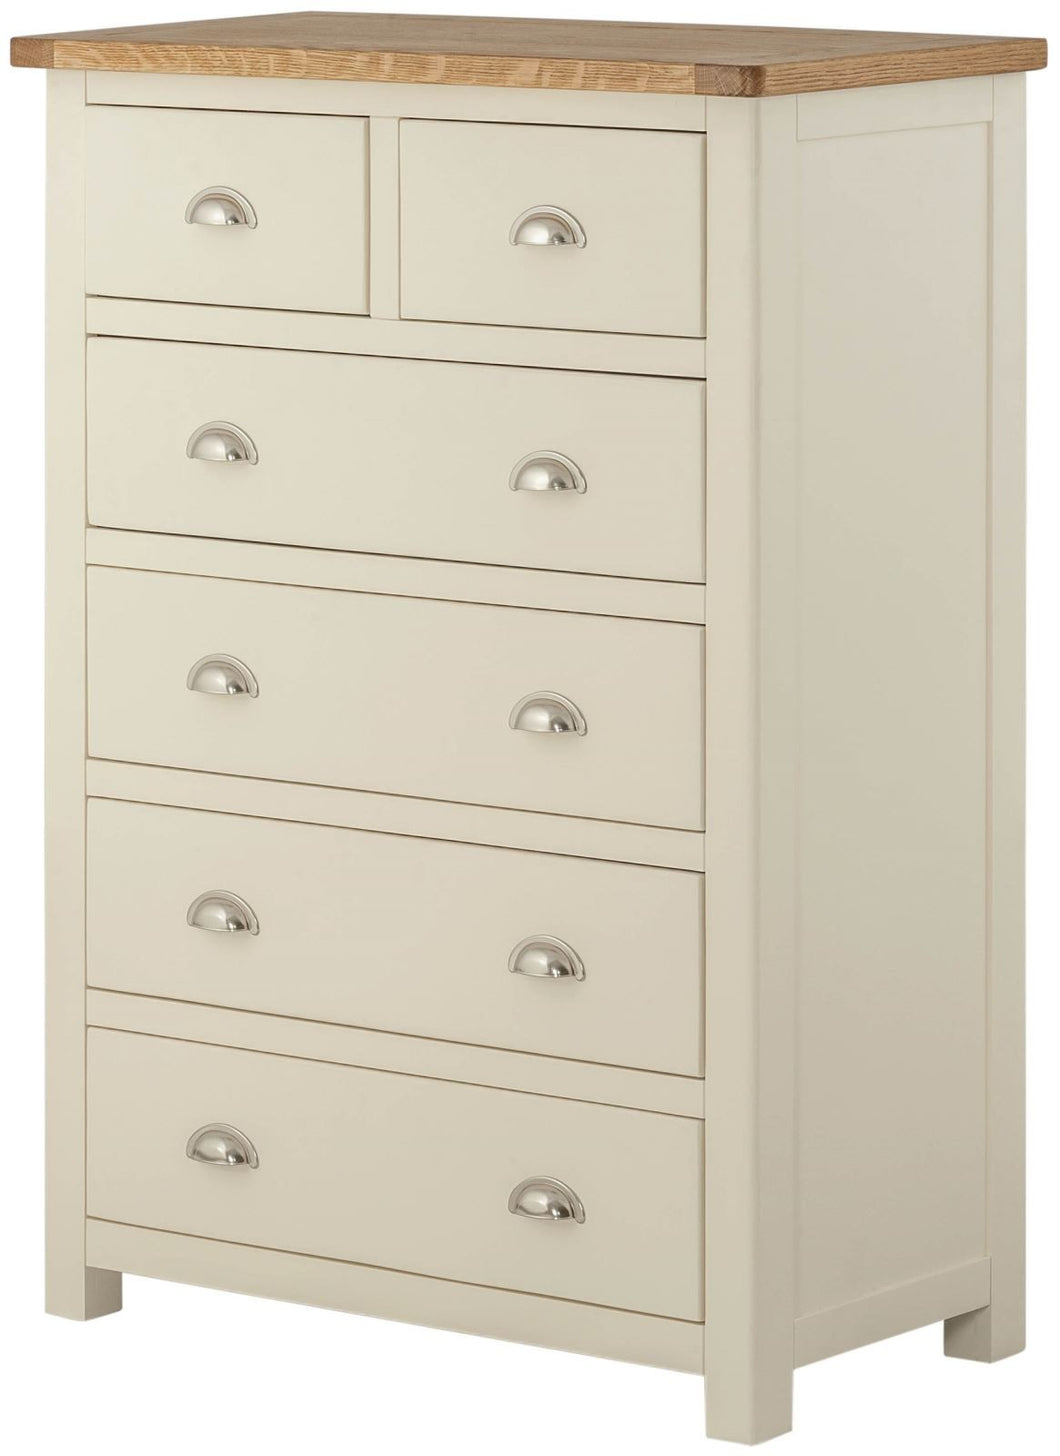 Binbrook 2 over 4 Drawer Chest - Painted